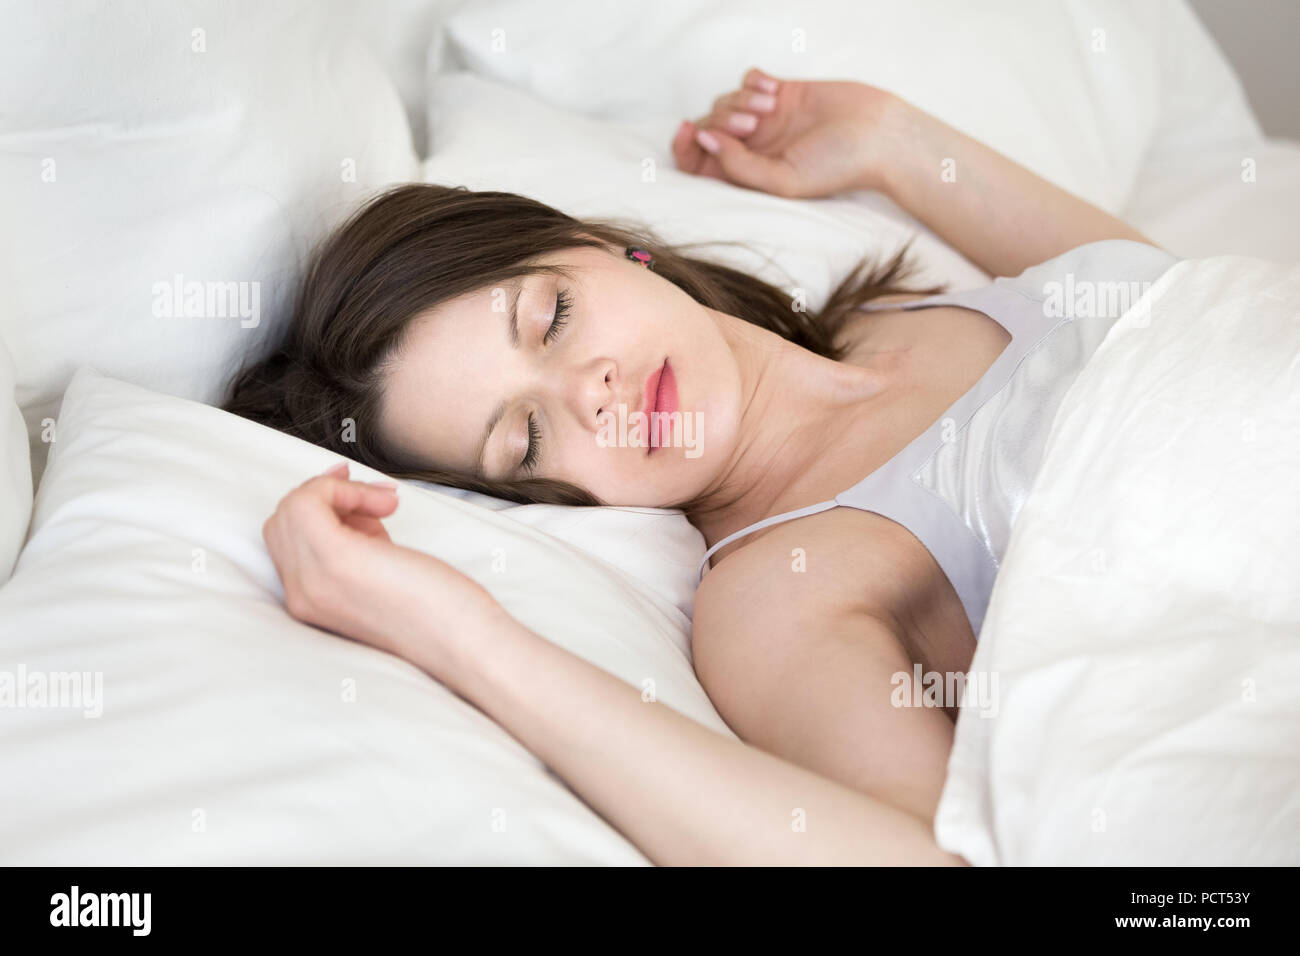 Young woman relaxing sleeping in cozy white bed - Stock Image